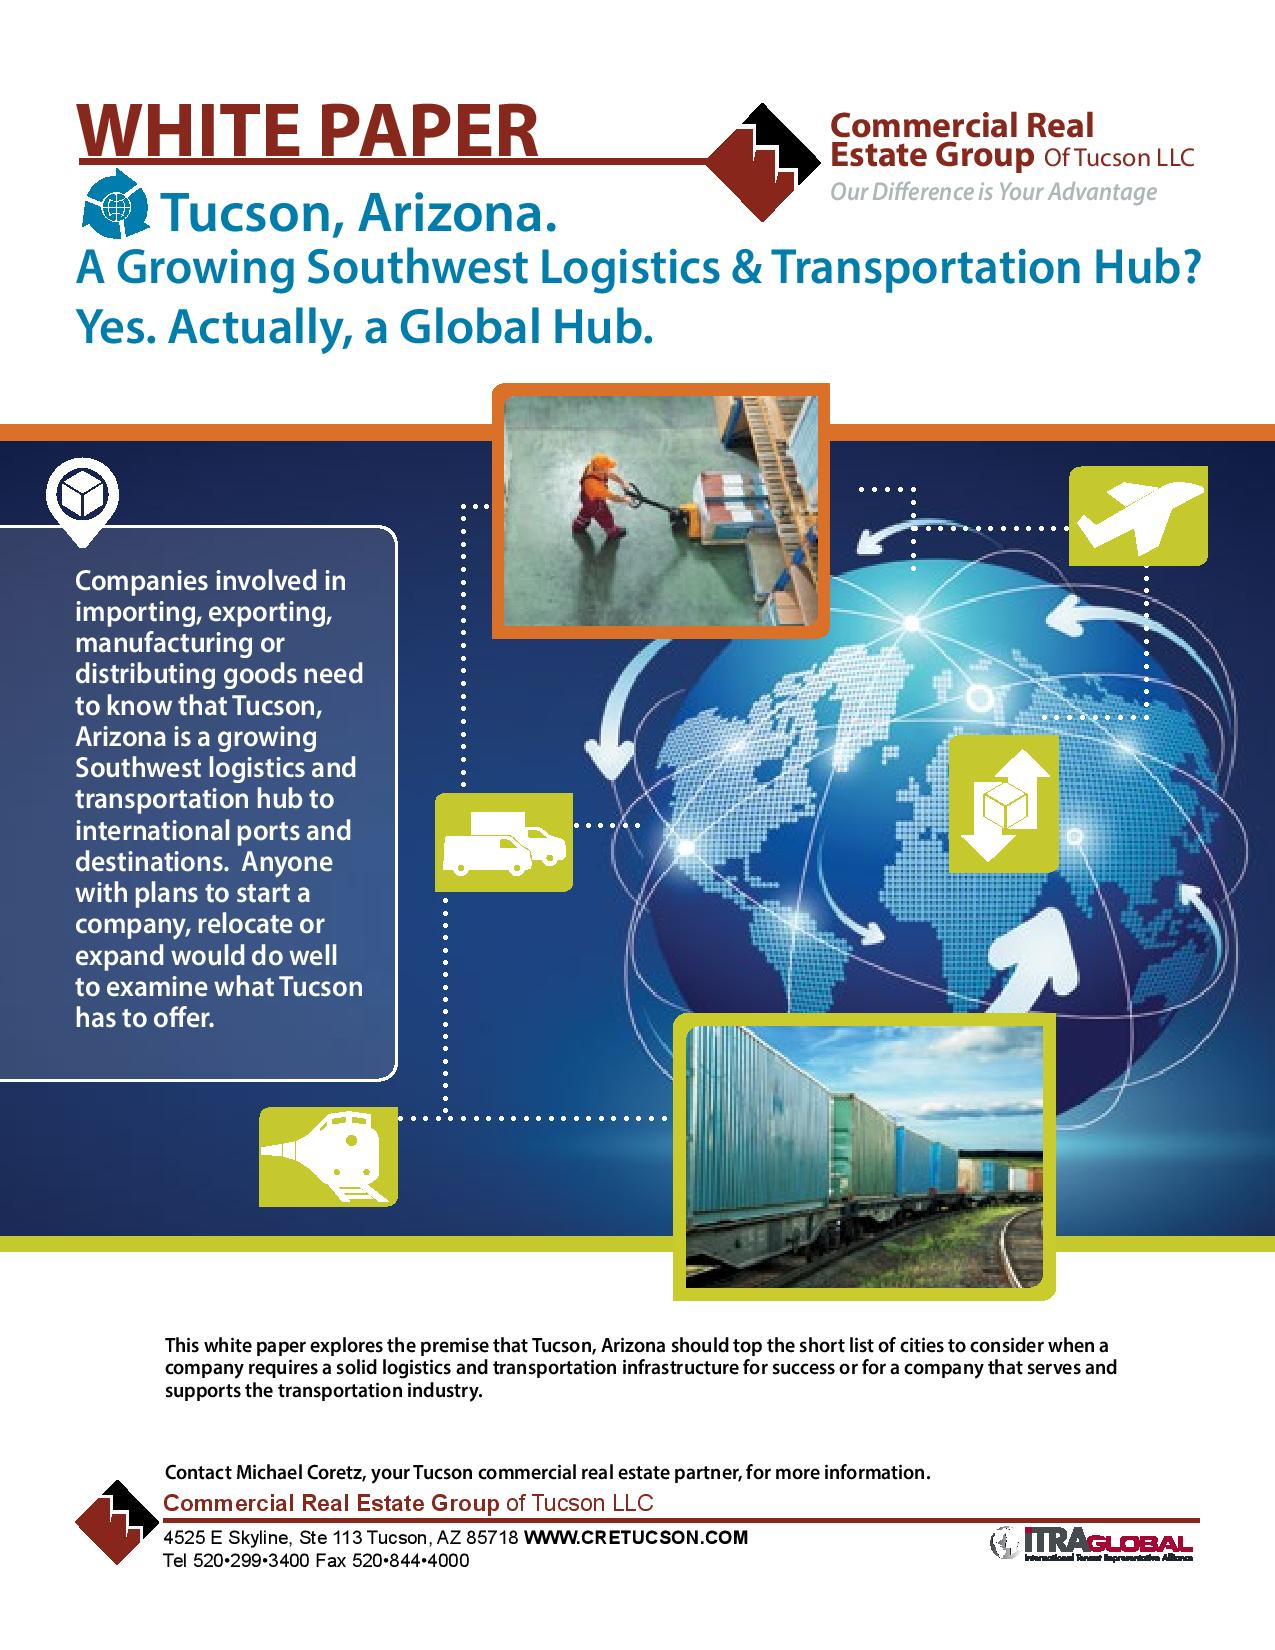 2014 Logistics & Transportation in Tucson Arizona Industrial Whitepaper (IMG)